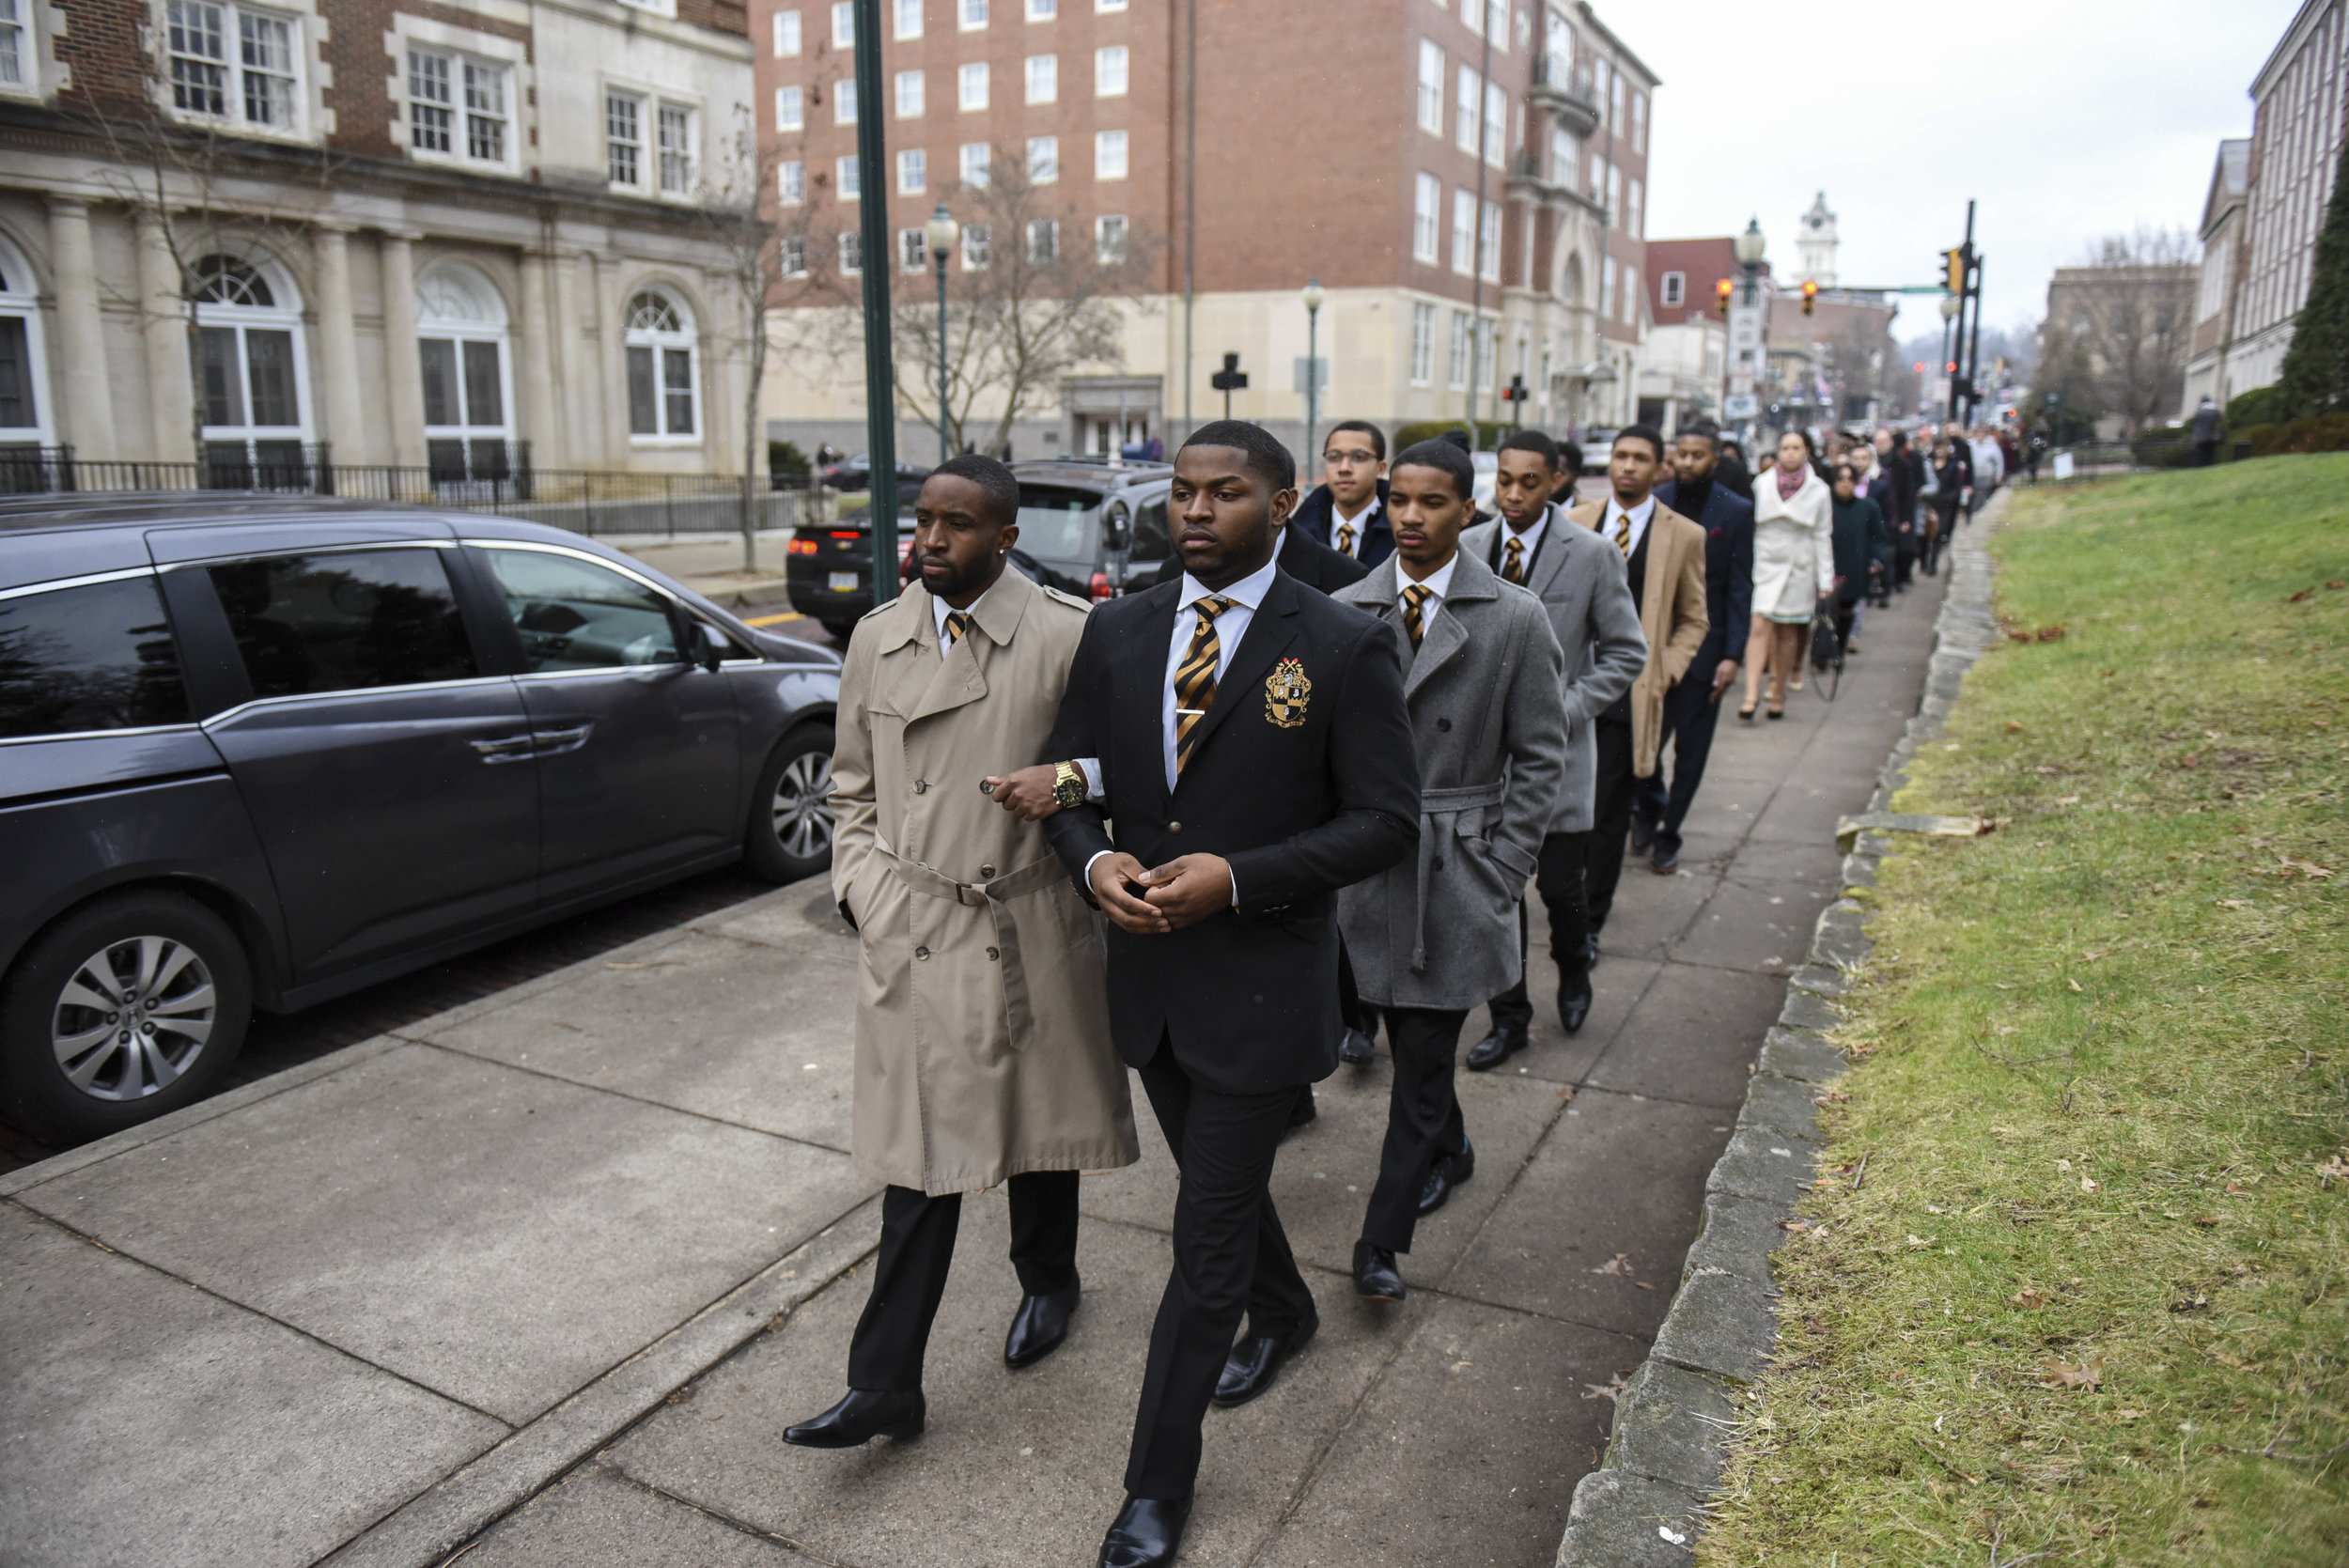 Elijah Cohen-Denison (left), Marquis Maines (right) and fellow members of Alpha Phi Alpha, a historically black fraternity at Ohio University, lead a silent march down Court Street in Athens, Ohio, in honor of Martin Luther King Jr. on Jan. 16, 2017. This is the 17th year that Alpha Phi Alpha has hosted this event.